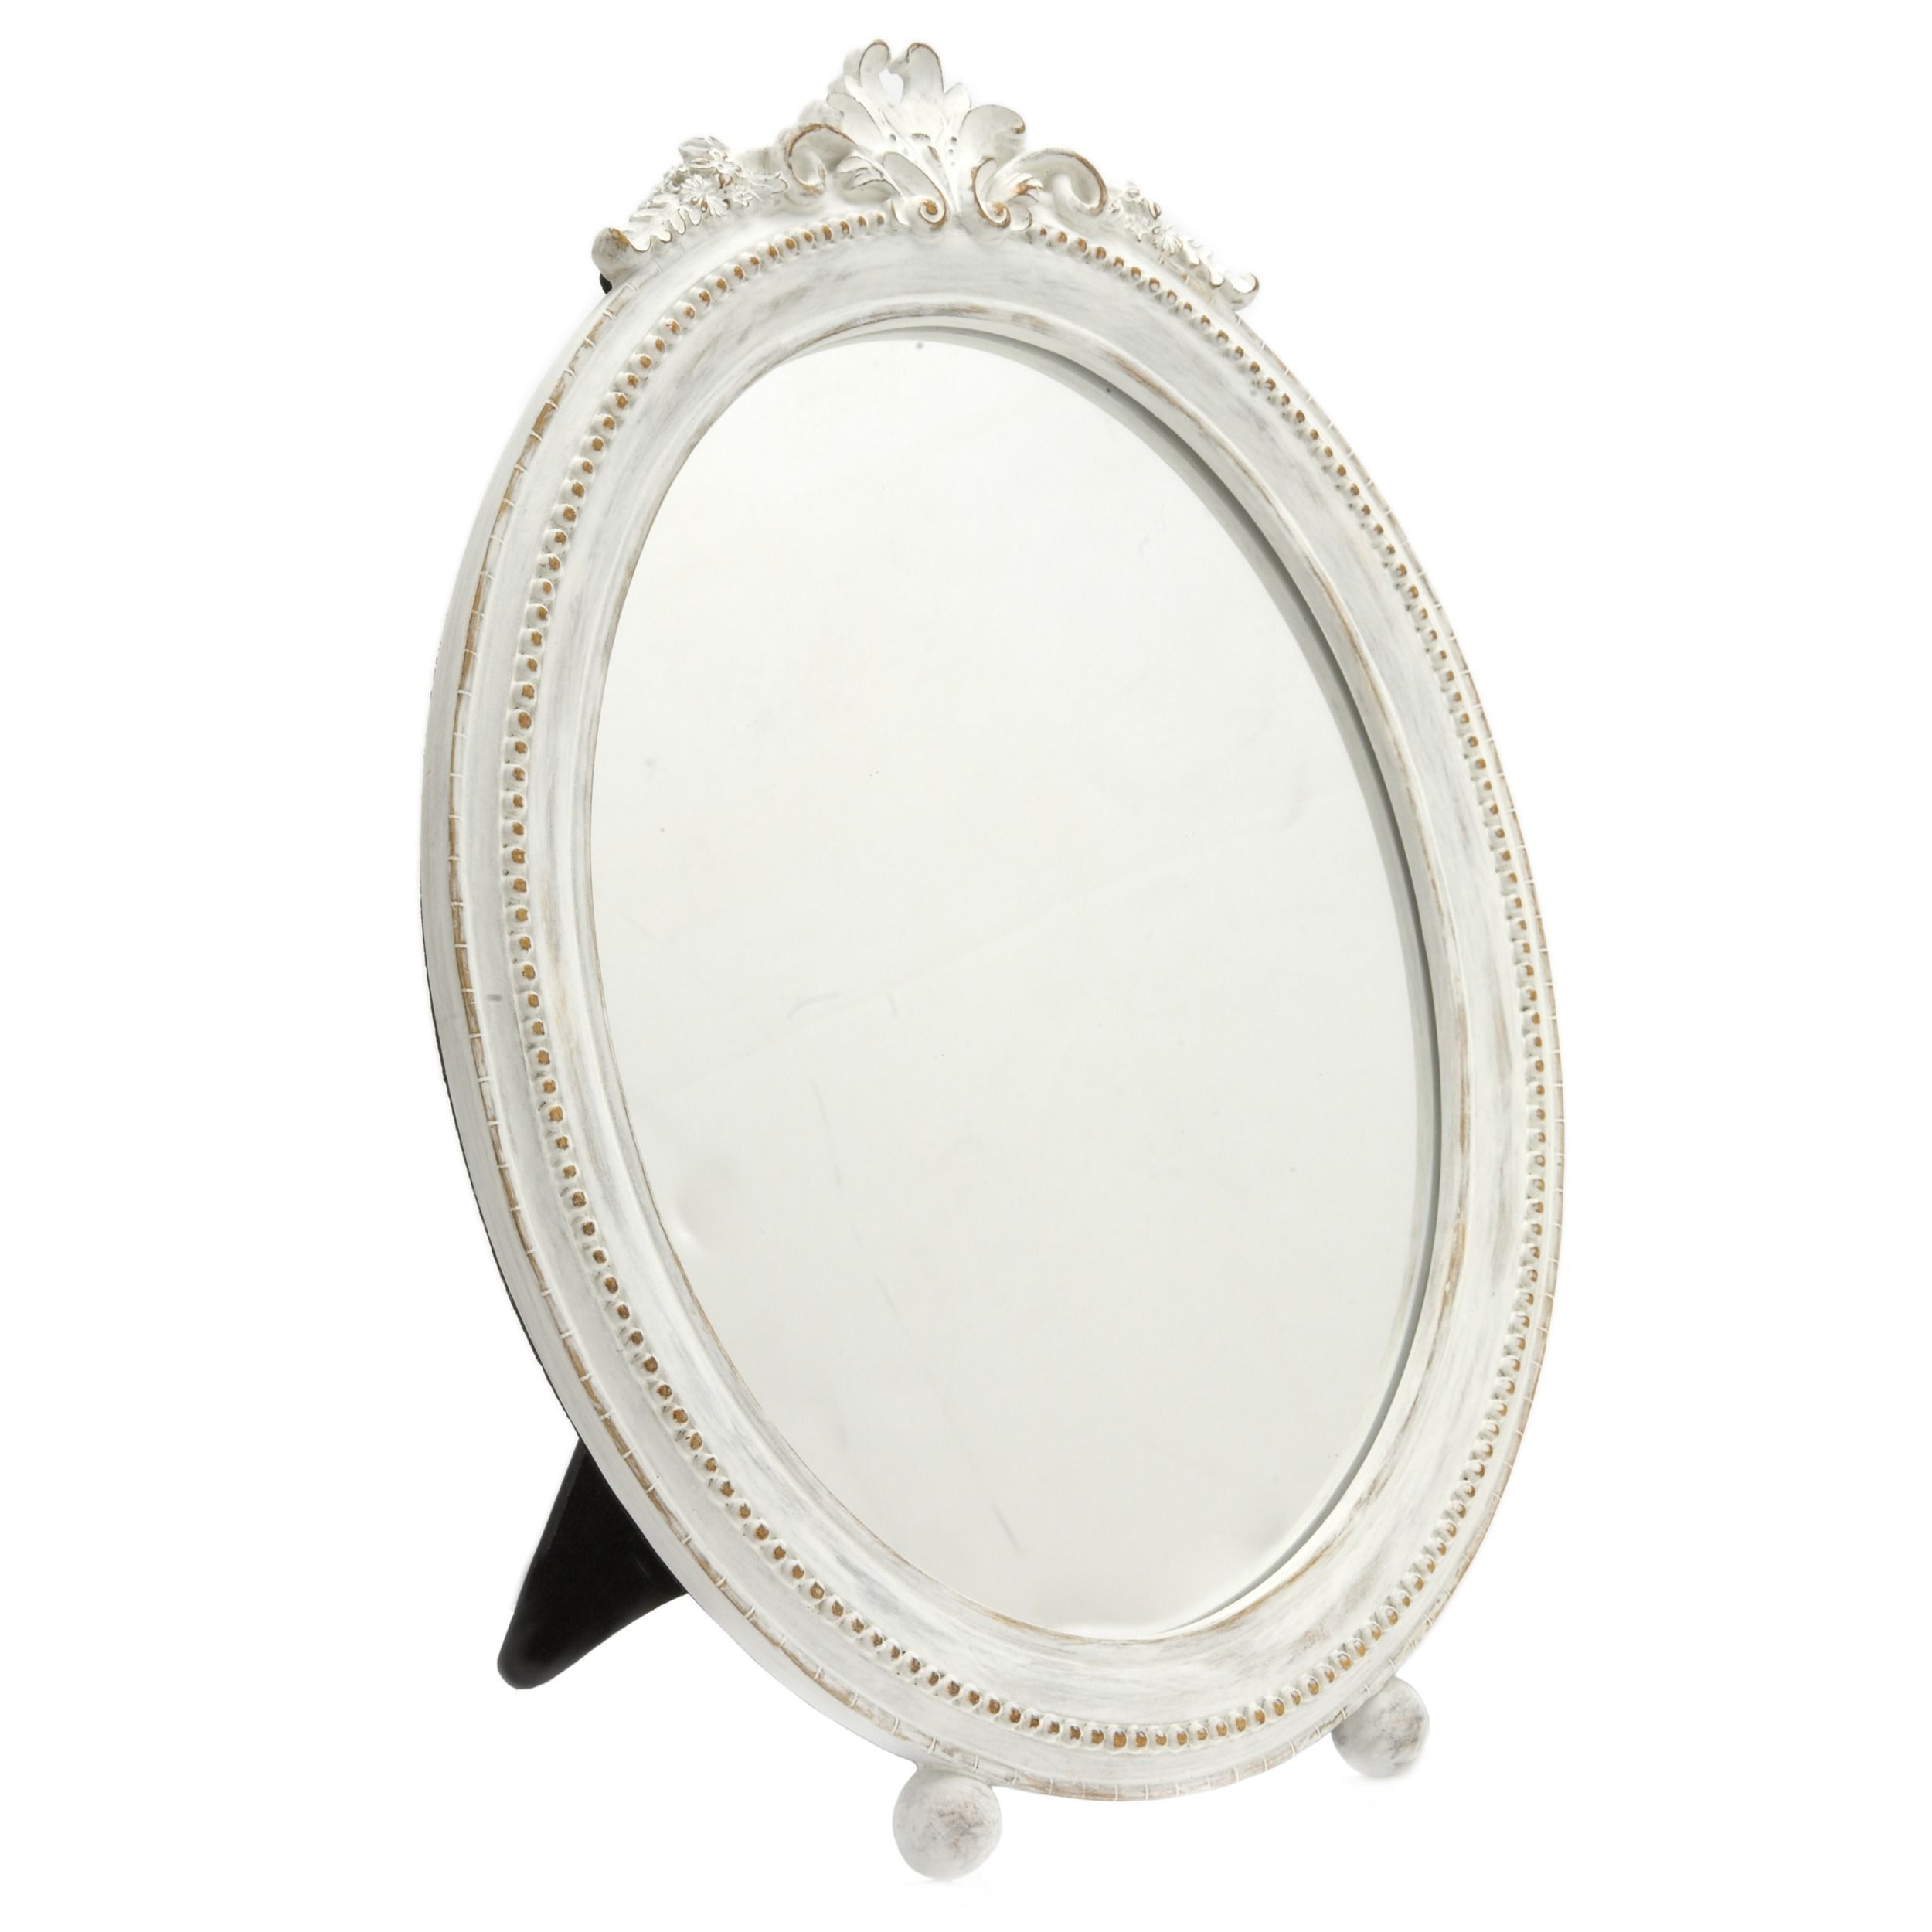 Oval Footed Vanity Dressing Table Mirror In Distressed Shabby Chic White  With Flower Flourish From Laura Ashley.